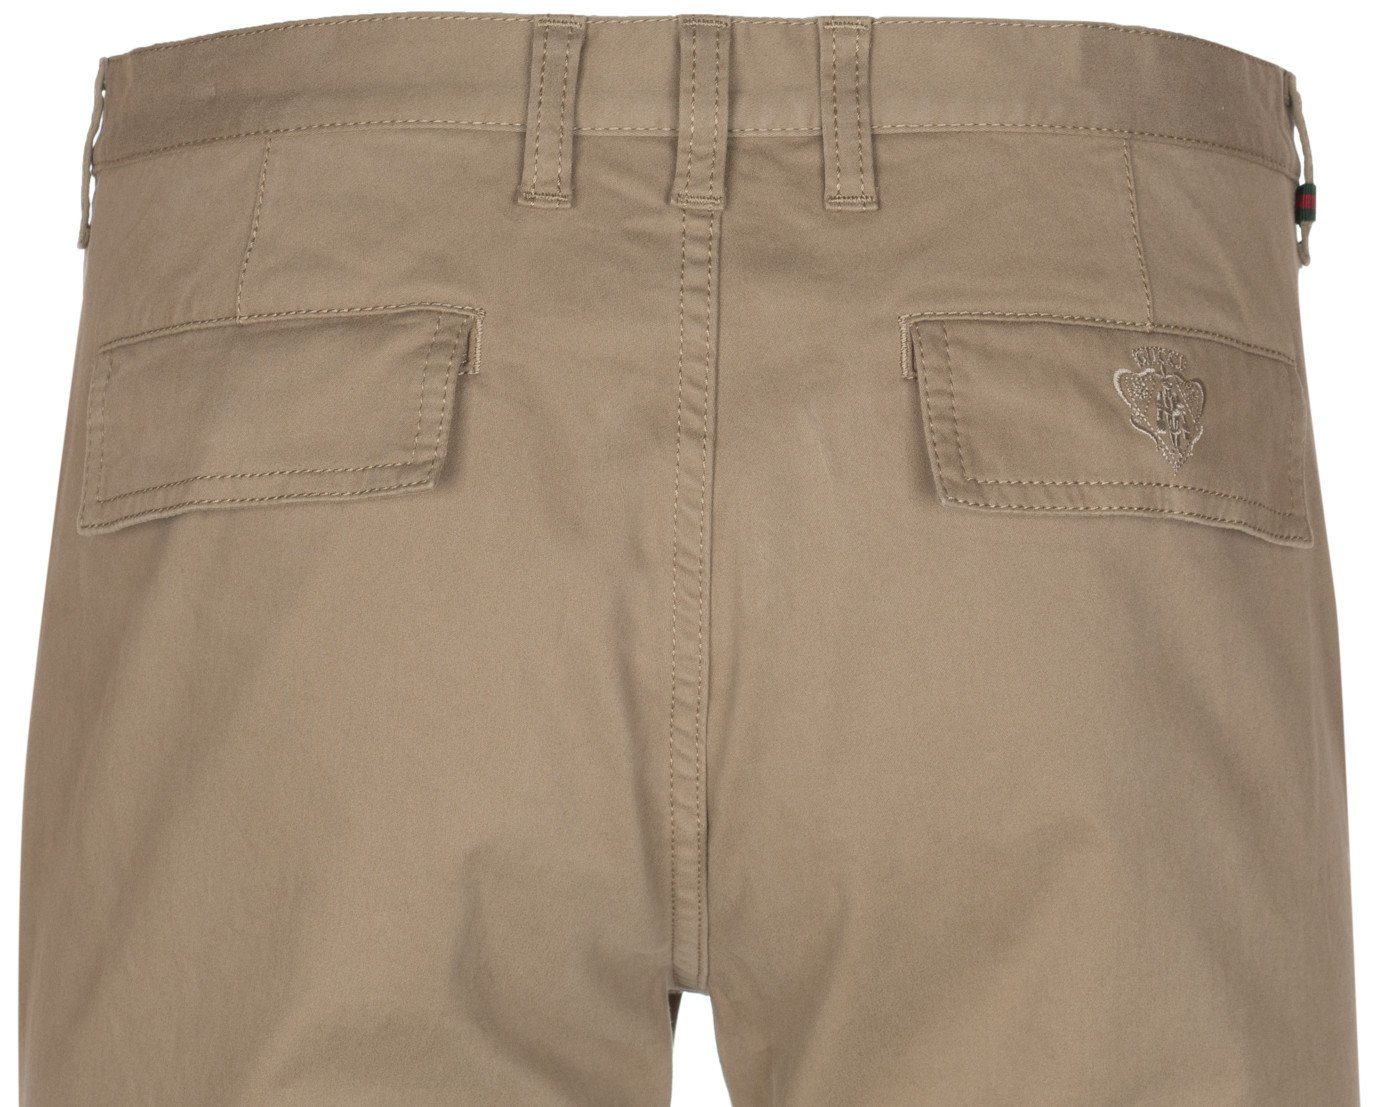 Gucci Men's Softened Stretch Cotton Short Chino Casual Pants, Beige, 28 by Gucci (Image #8)